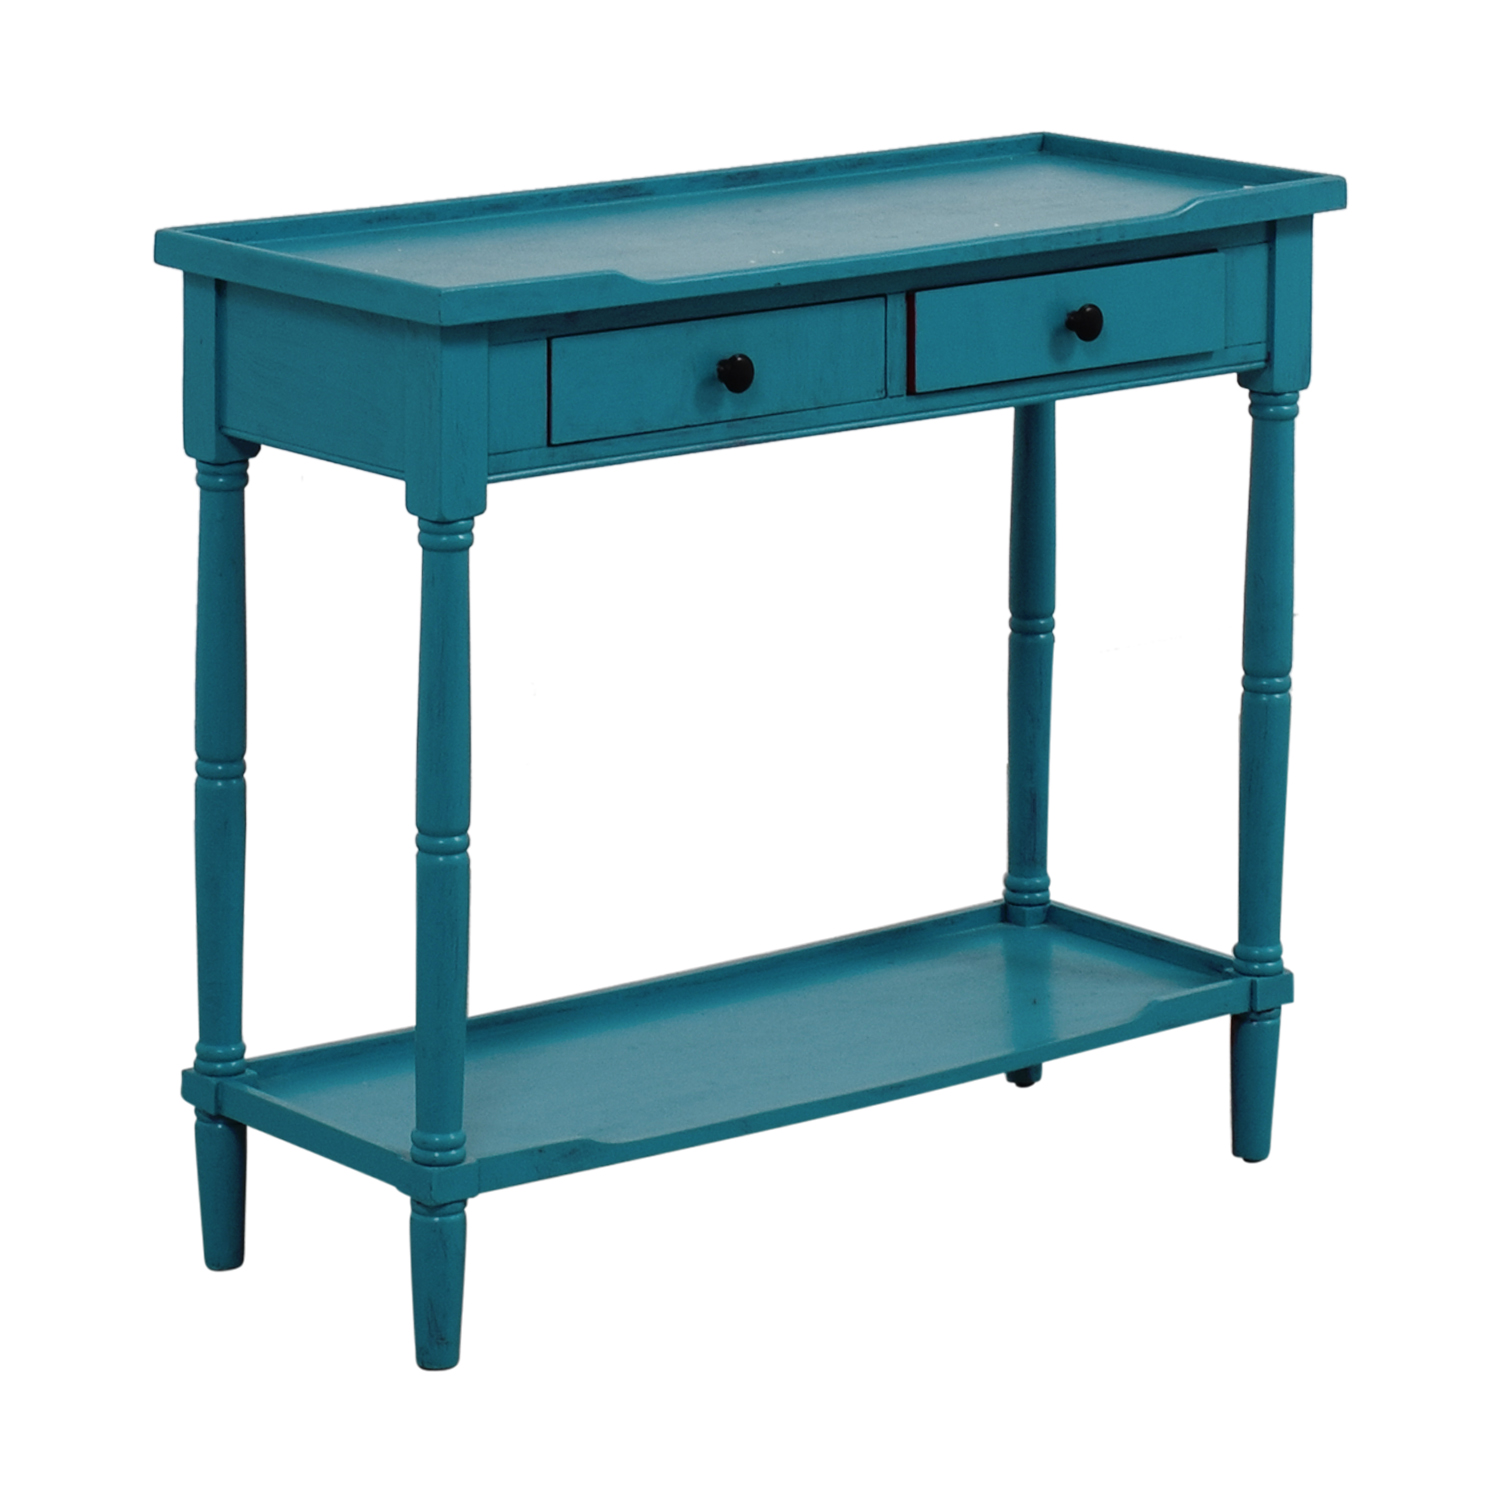 off homegoods teal entryway table tables cherry accent home goods marshalls multi colored wooden bedside gold lamps high round drum side breakfast nook furniture windham tall